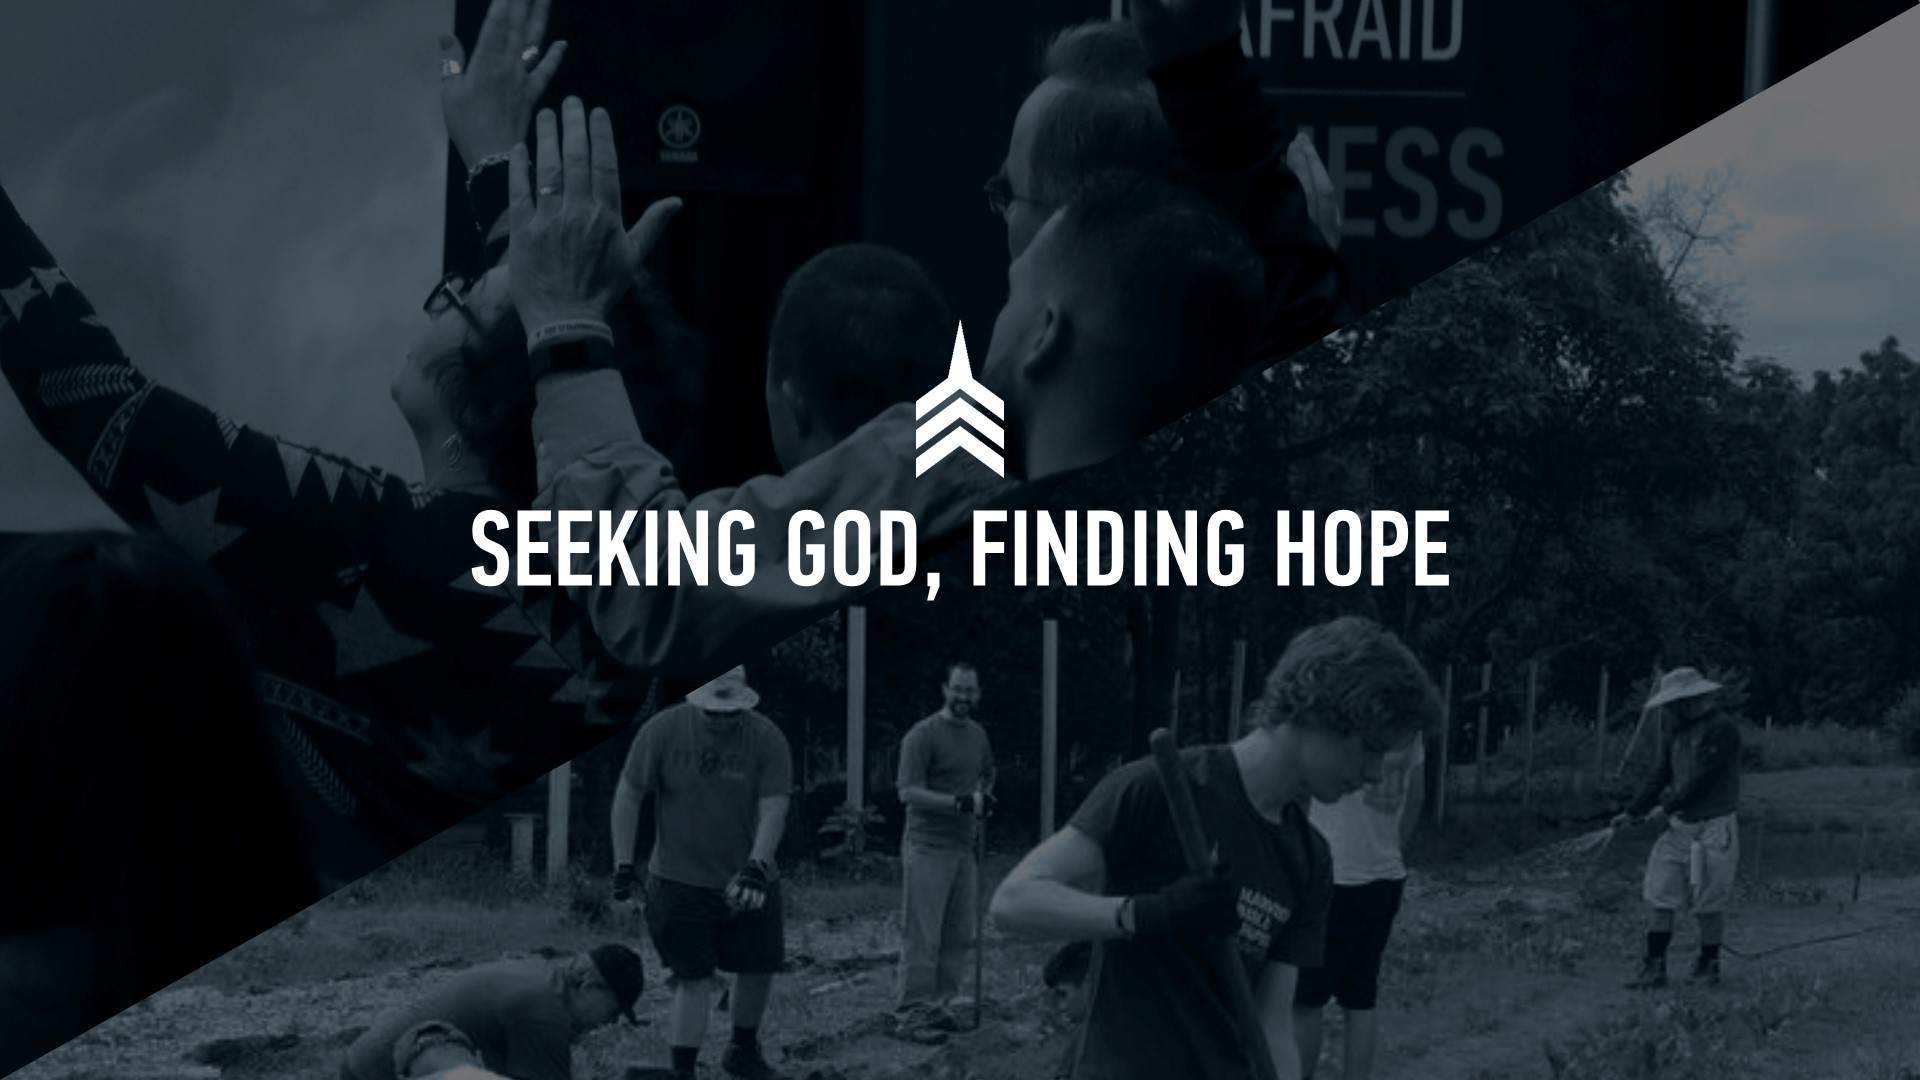 20190512 Seeking God, Finding Hope.JPG